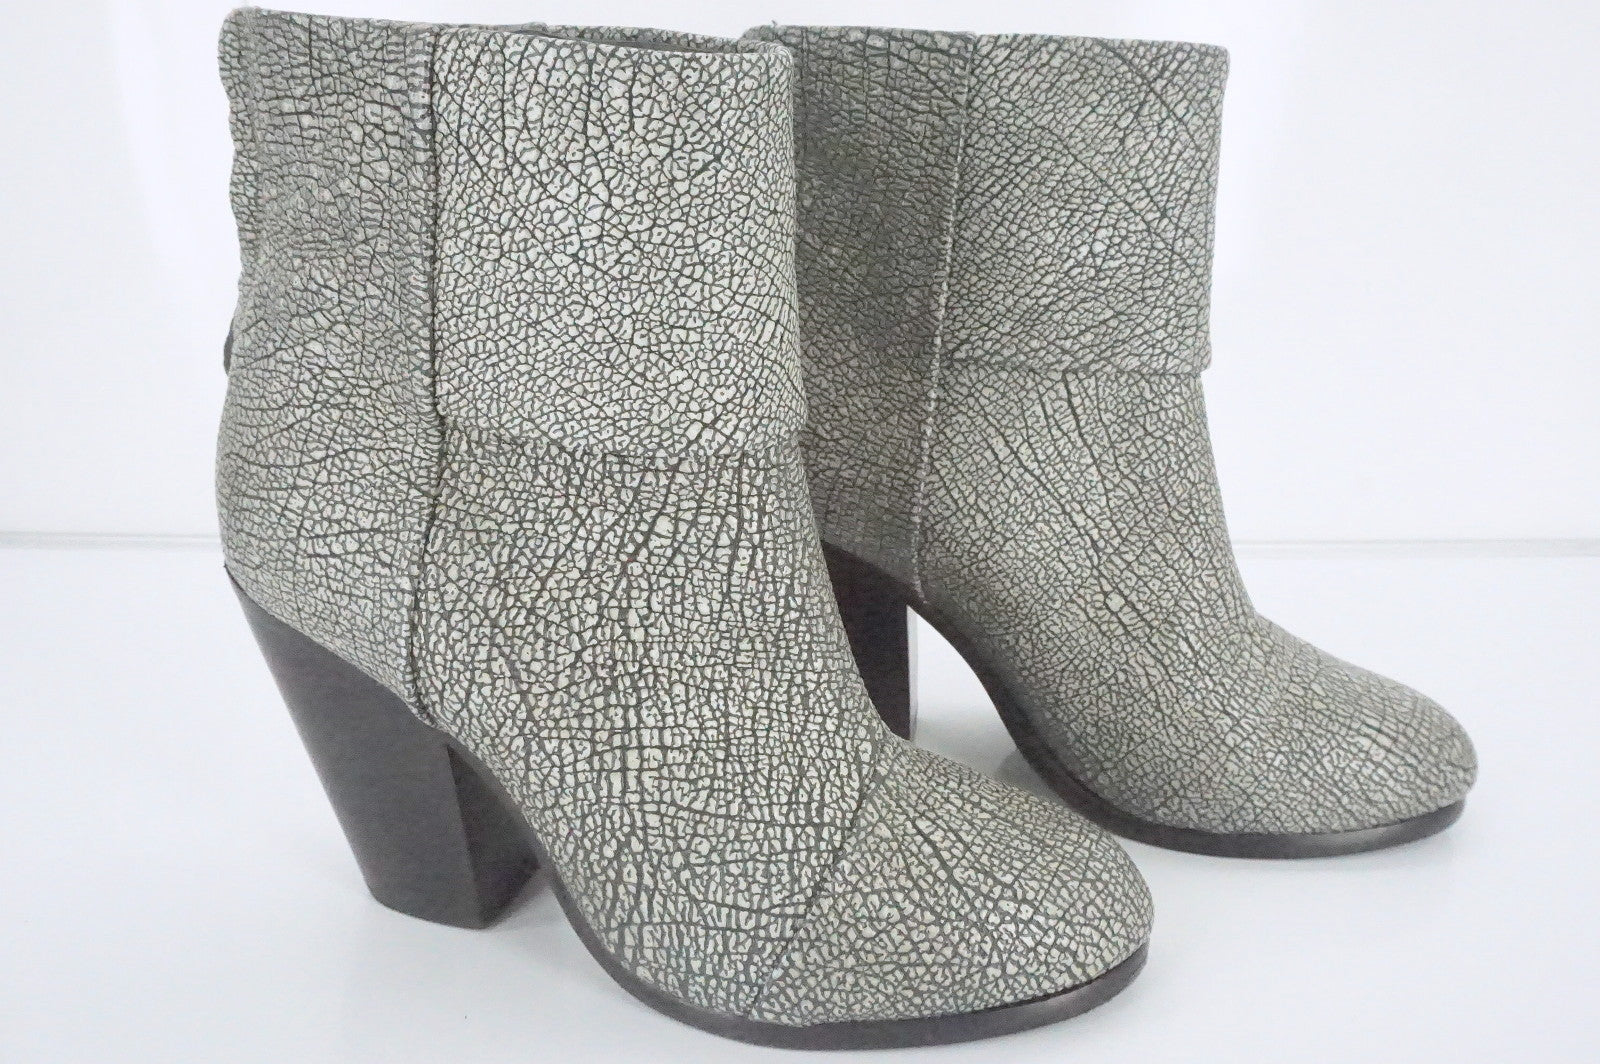 Rag & Bone Grey Textured Leather Newbury Ankle Boots Size 35 NIB Cap Toe $495